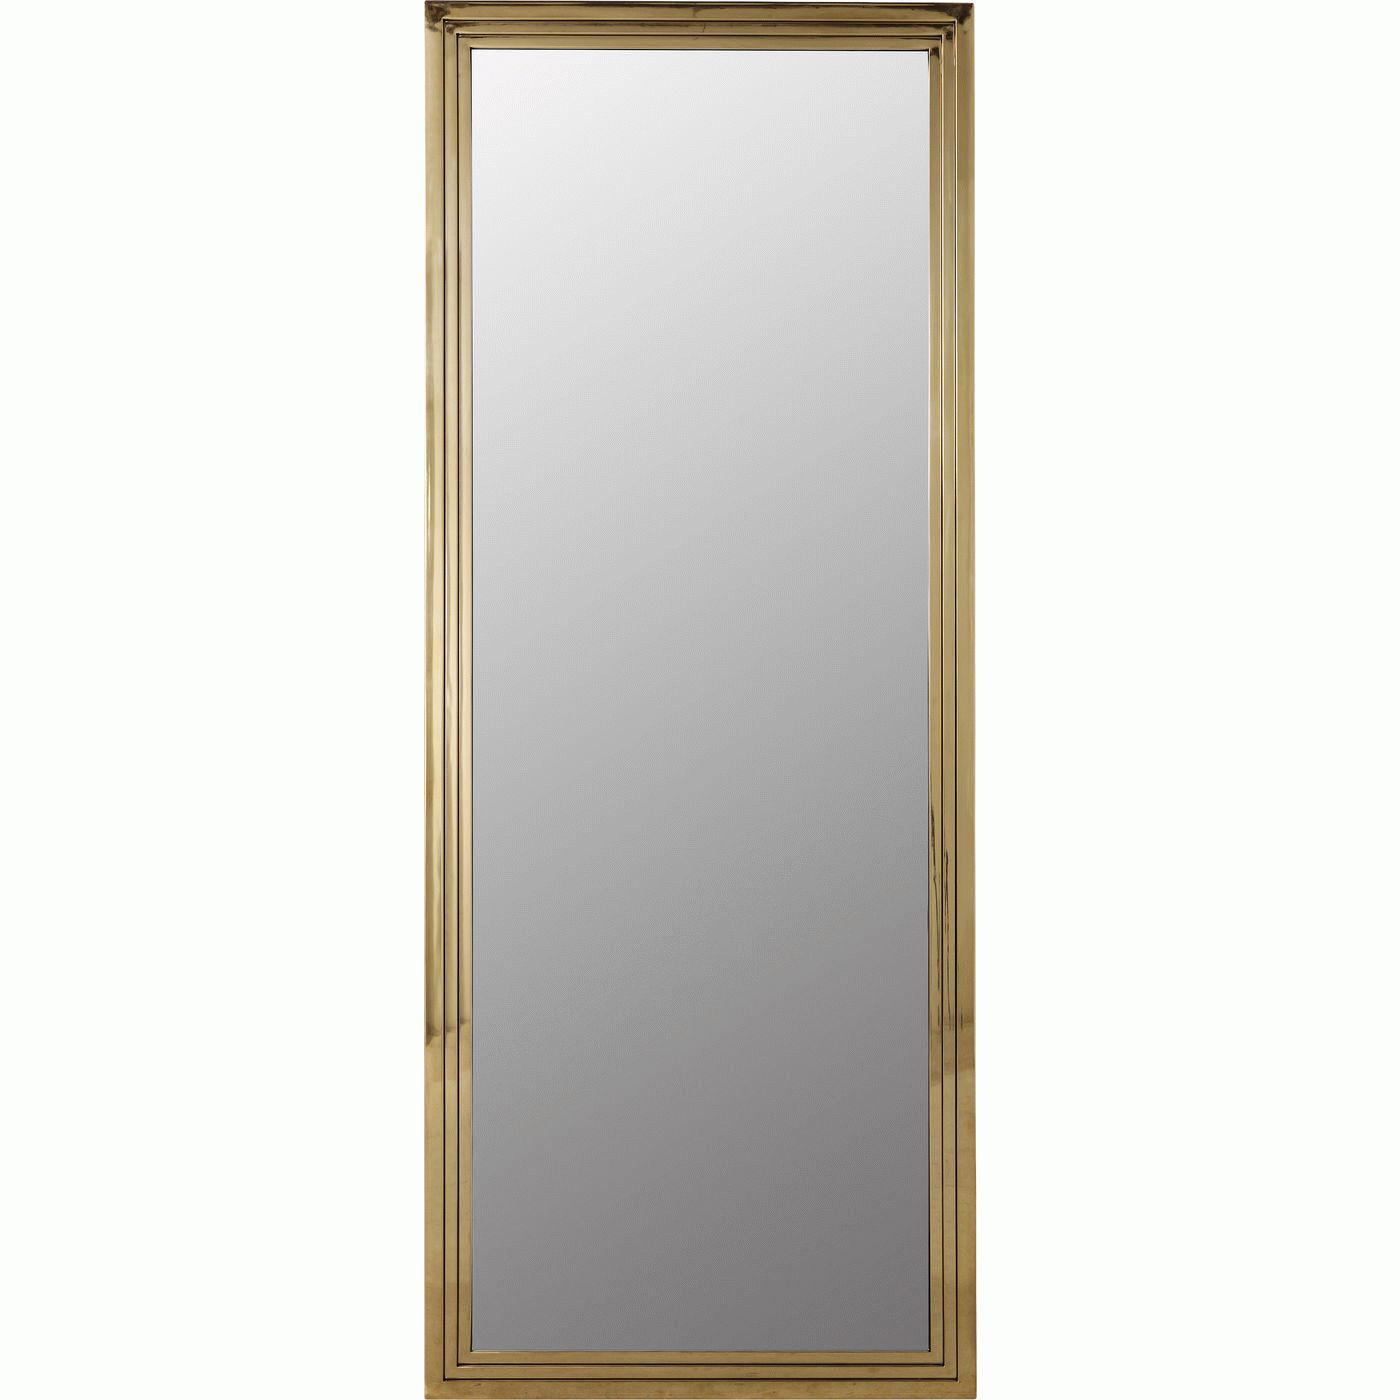 ornate f floors furniture l master mirrors full leaning gold wall of for sale large buy medium size length antique mirror at id vintage floor silver